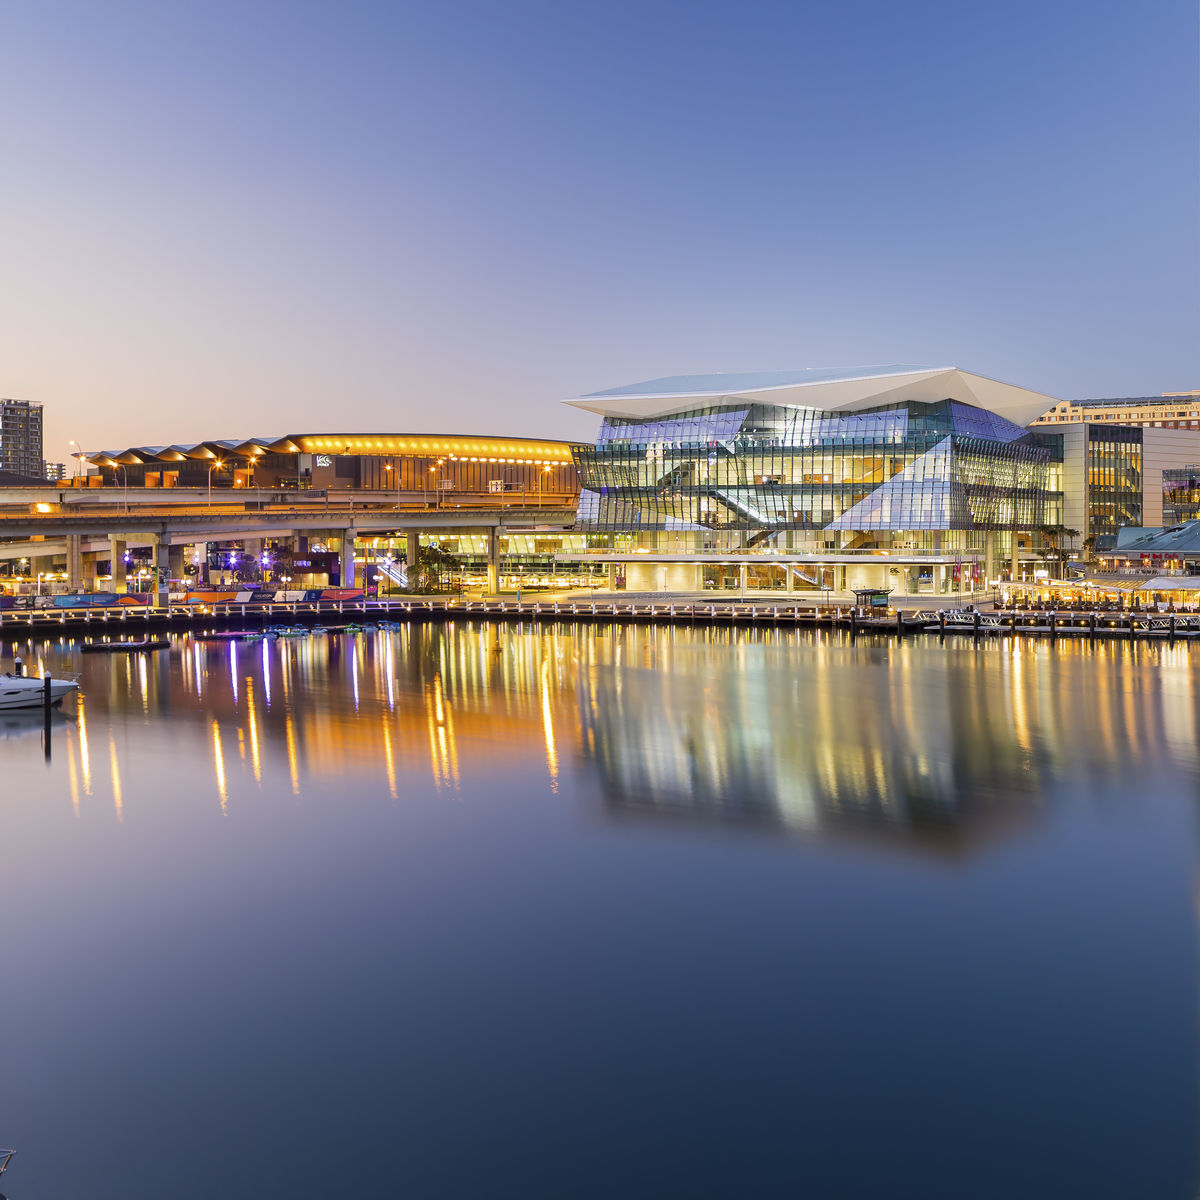 Exterior Image of International Convention Center Sydney at dusk on the water